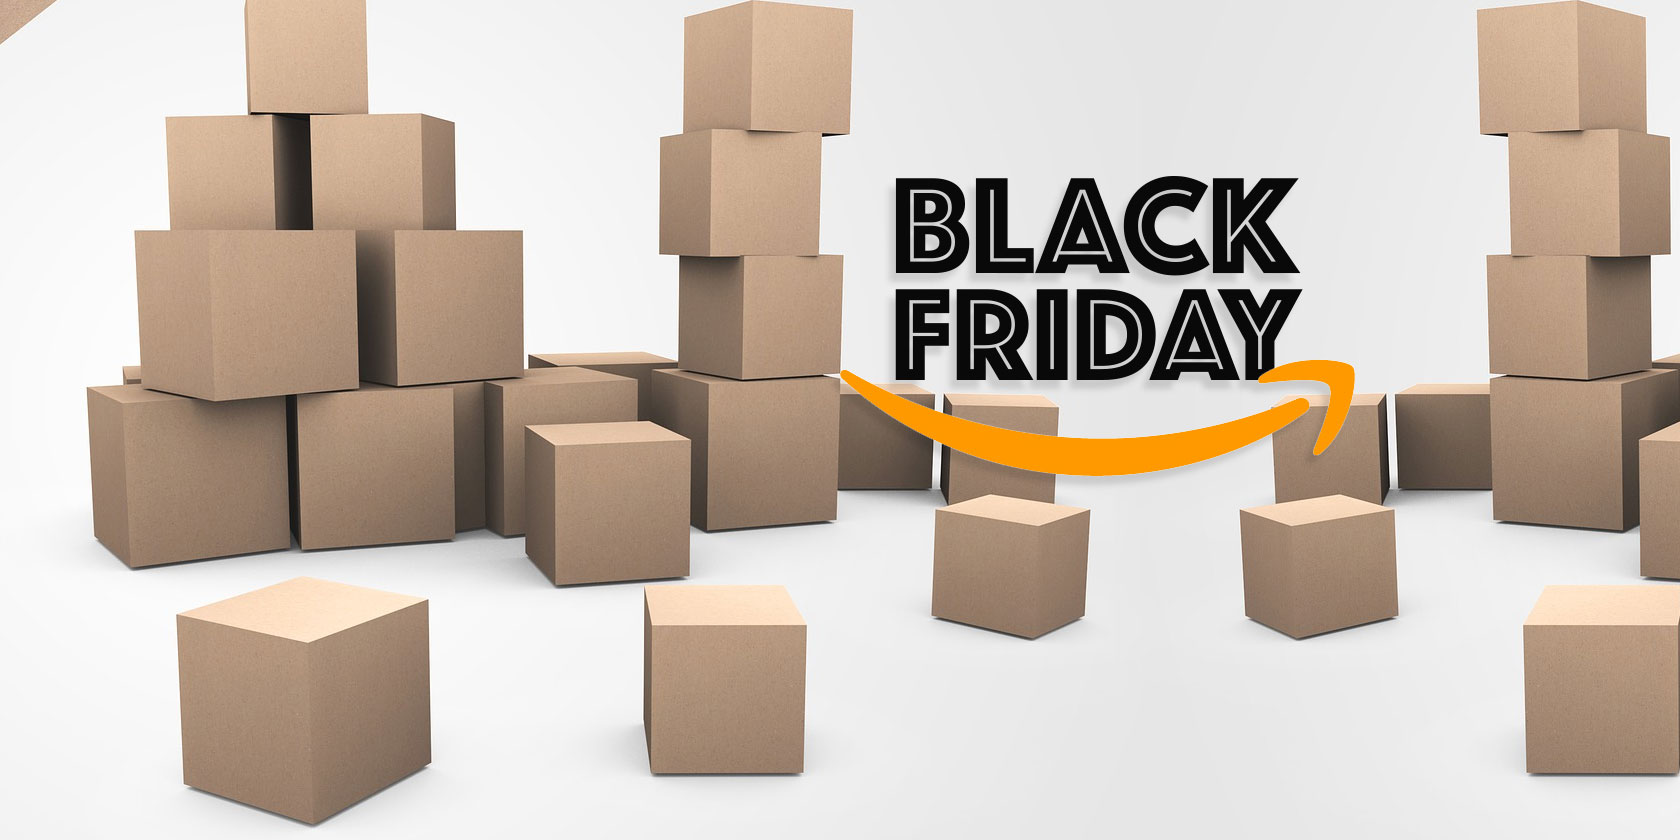 blackfriday-amazon